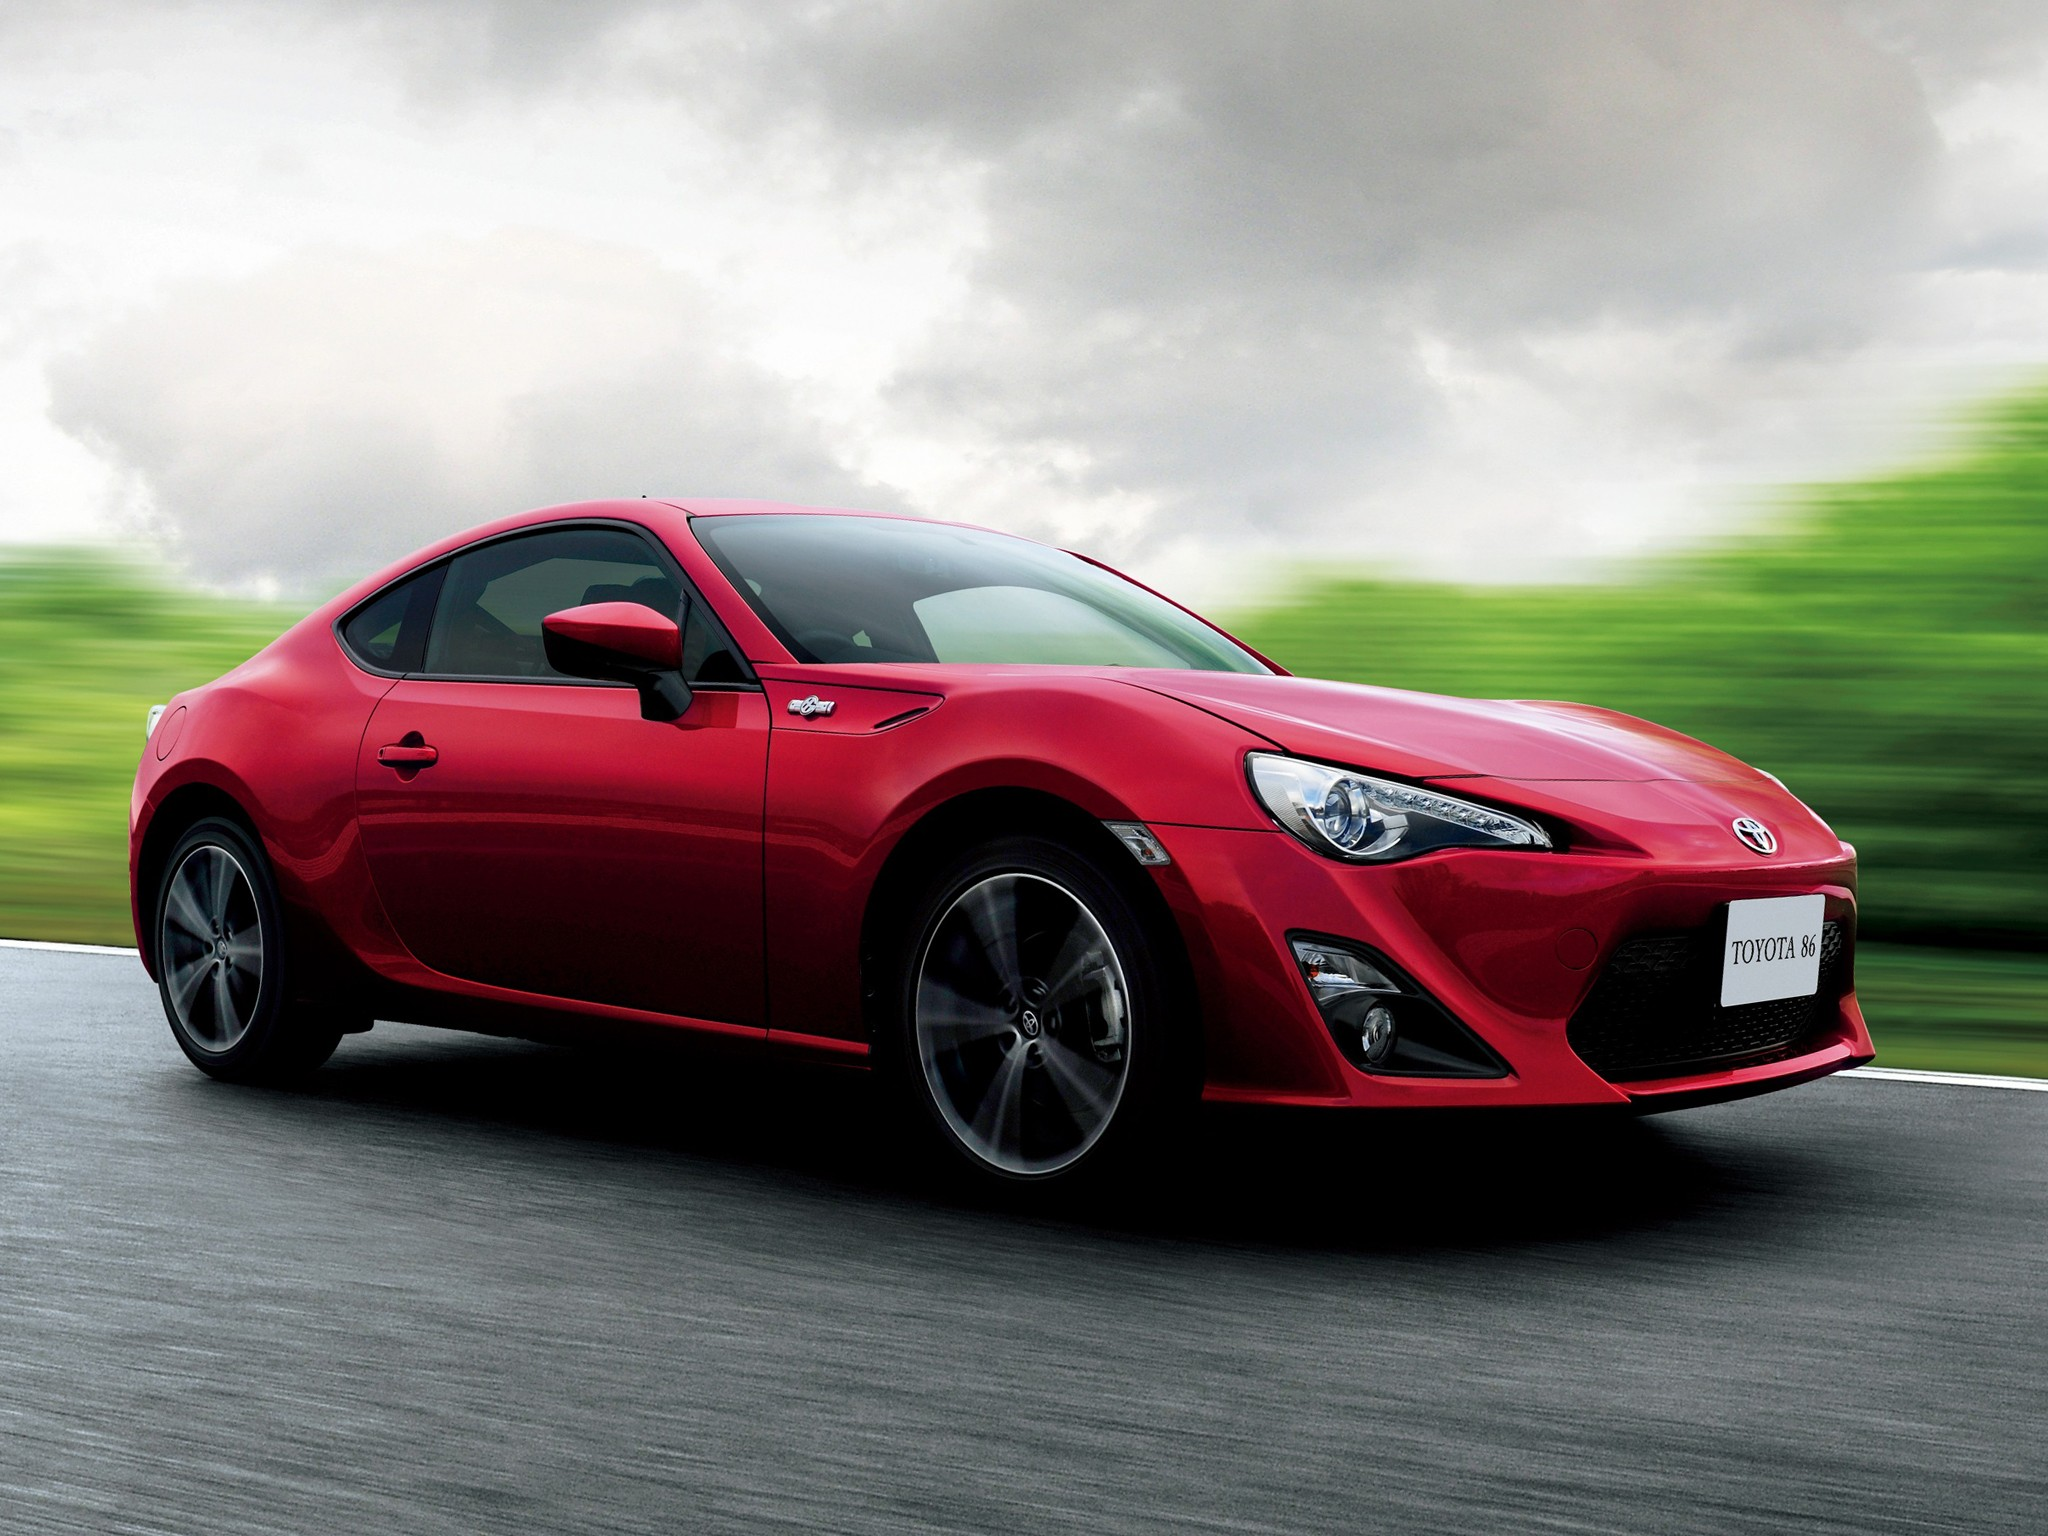 toyota gt 86 2012 2013 2014 2015 2016 autoevolution. Black Bedroom Furniture Sets. Home Design Ideas